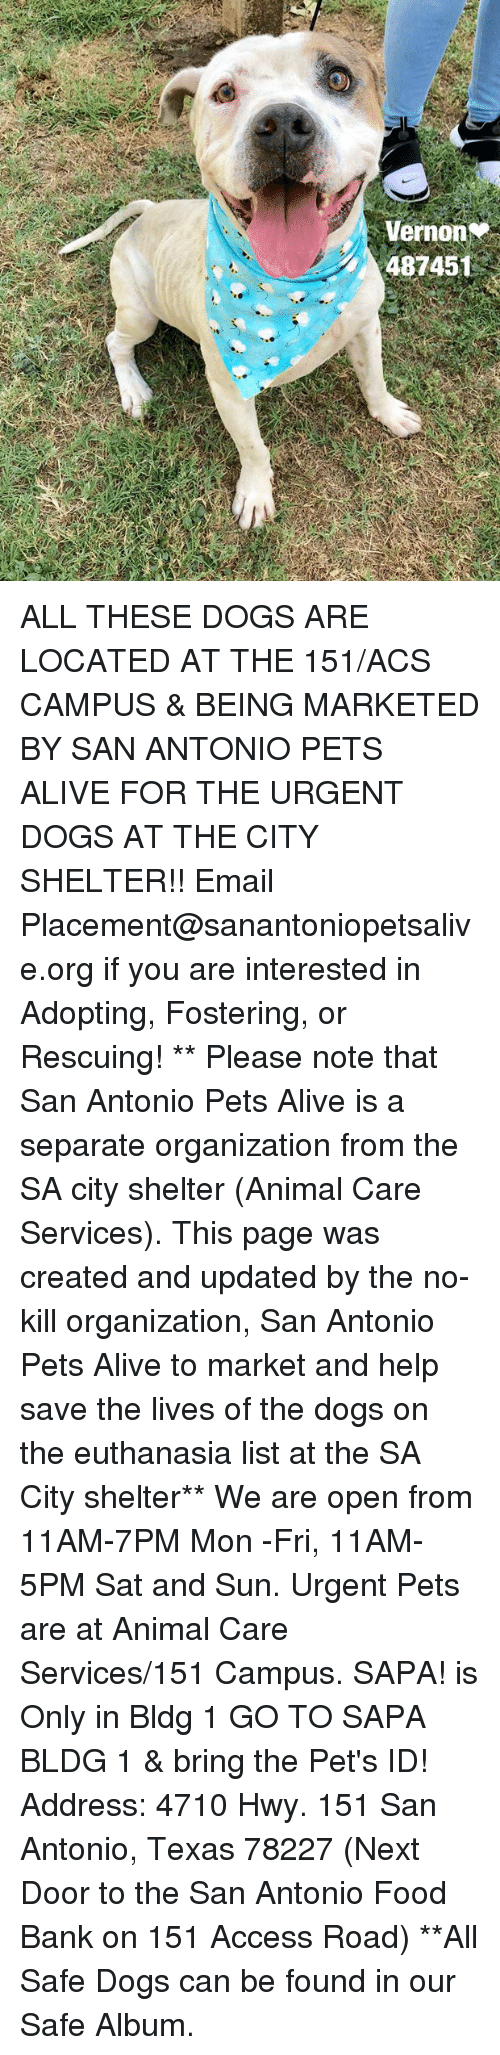 veron: Veron  48745 ALL THESE DOGS ARE LOCATED AT THE 151/ACS CAMPUS & BEING MARKETED BY SAN ANTONIO PETS ALIVE FOR THE URGENT DOGS AT THE CITY SHELTER!!  Email Placement@sanantoniopetsalive.org if you are interested in Adopting, Fostering, or Rescuing!                                                                                                                                                                                                                                                                                                                                                             ** Please note that San Antonio Pets Alive is a separate organization from the SA city shelter (Animal Care Services). This page was created and updated by the no-kill organization, San Antonio Pets Alive to market and help save the lives of the dogs on the euthanasia list at the SA City shelter**  We are open from 11AM-7PM Mon -Fri, 11AM-5PM Sat and Sun. Urgent Pets are at Animal Care Services/151 Campus. SAPA! is Only in Bldg 1 GO TO SAPA BLDG 1 & bring the Pet's ID! Address: 4710 Hwy. 151 San Antonio, Texas 78227 (Next Door to the San Antonio Food Bank on 151 Access Road) **All Safe Dogs can be found in our Safe Album.